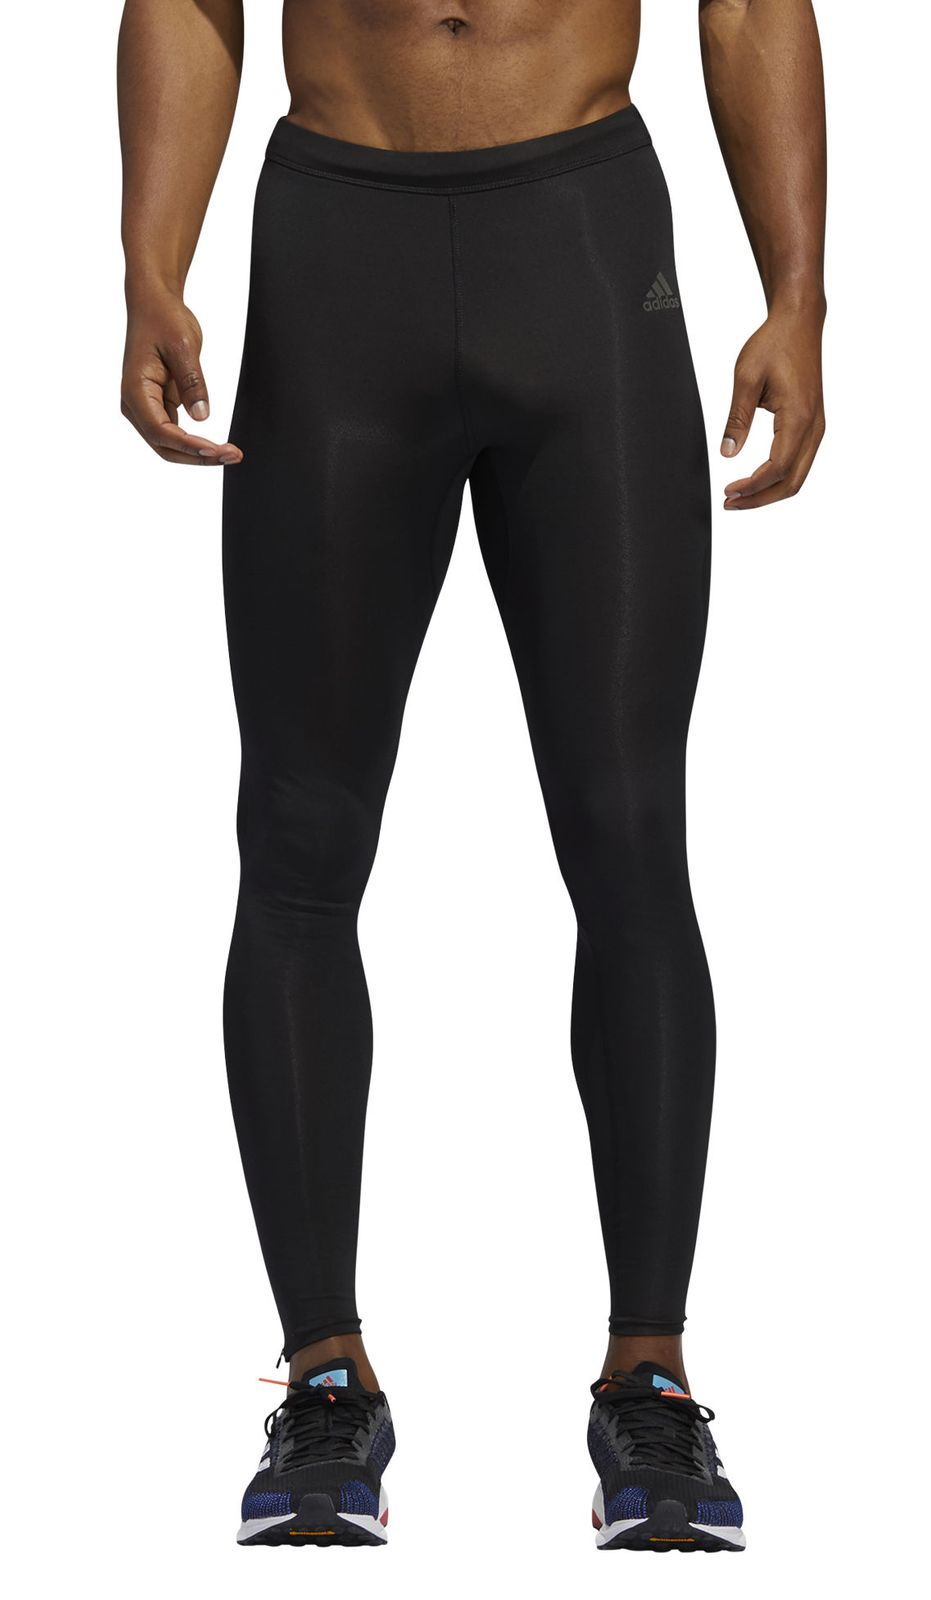 Pro Touch Herren Tight lang brushed Paddington II Lauf Runningtight Schwarz Neu